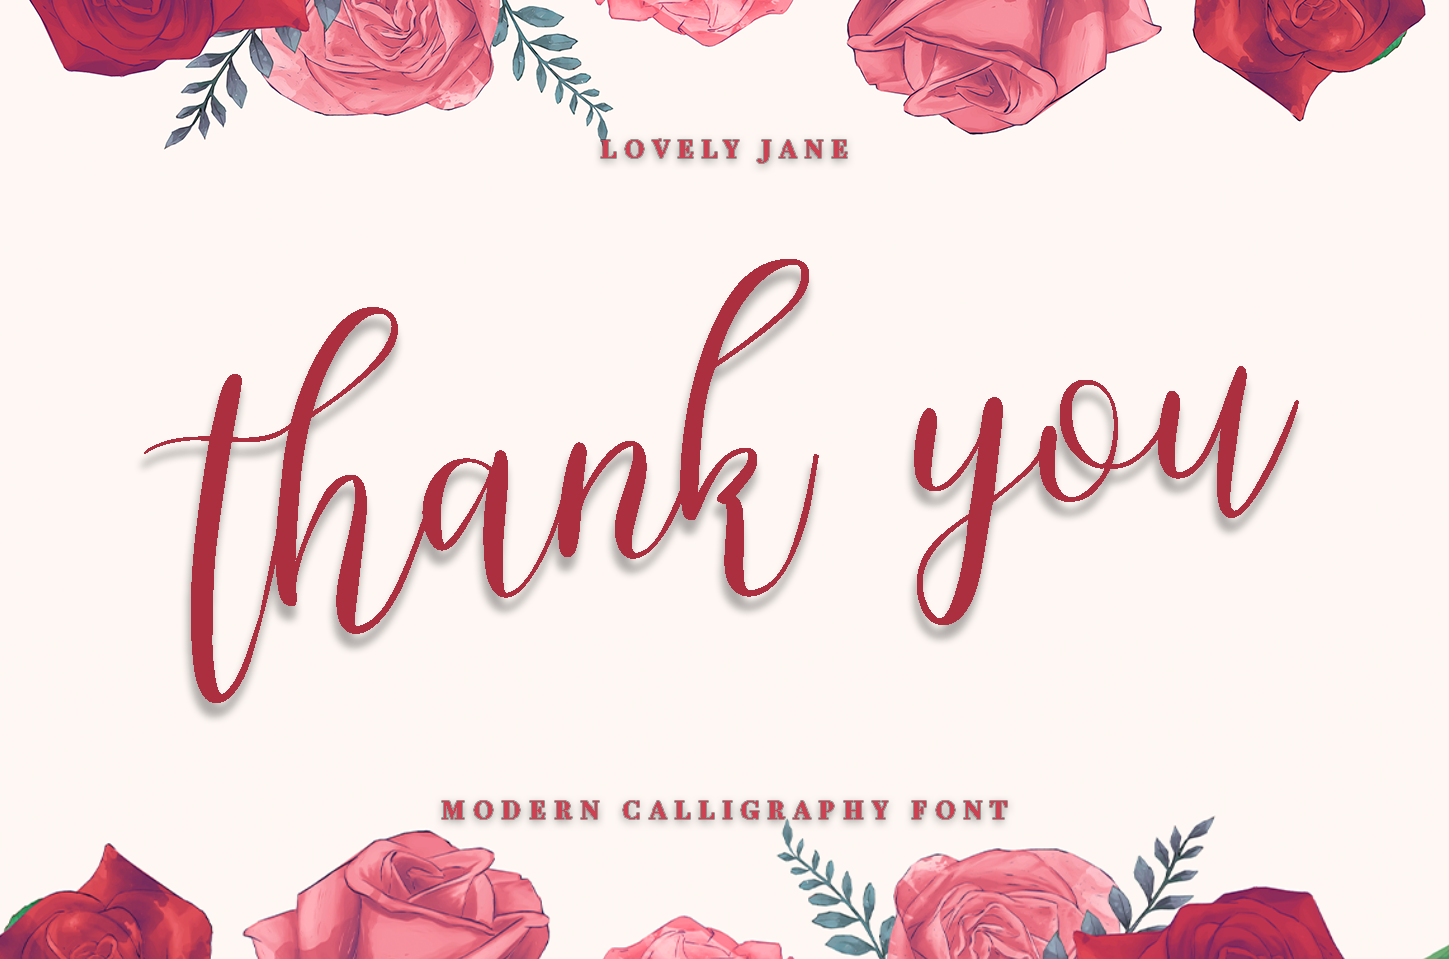 lovely Jane - Modern calligraphy font example image 6